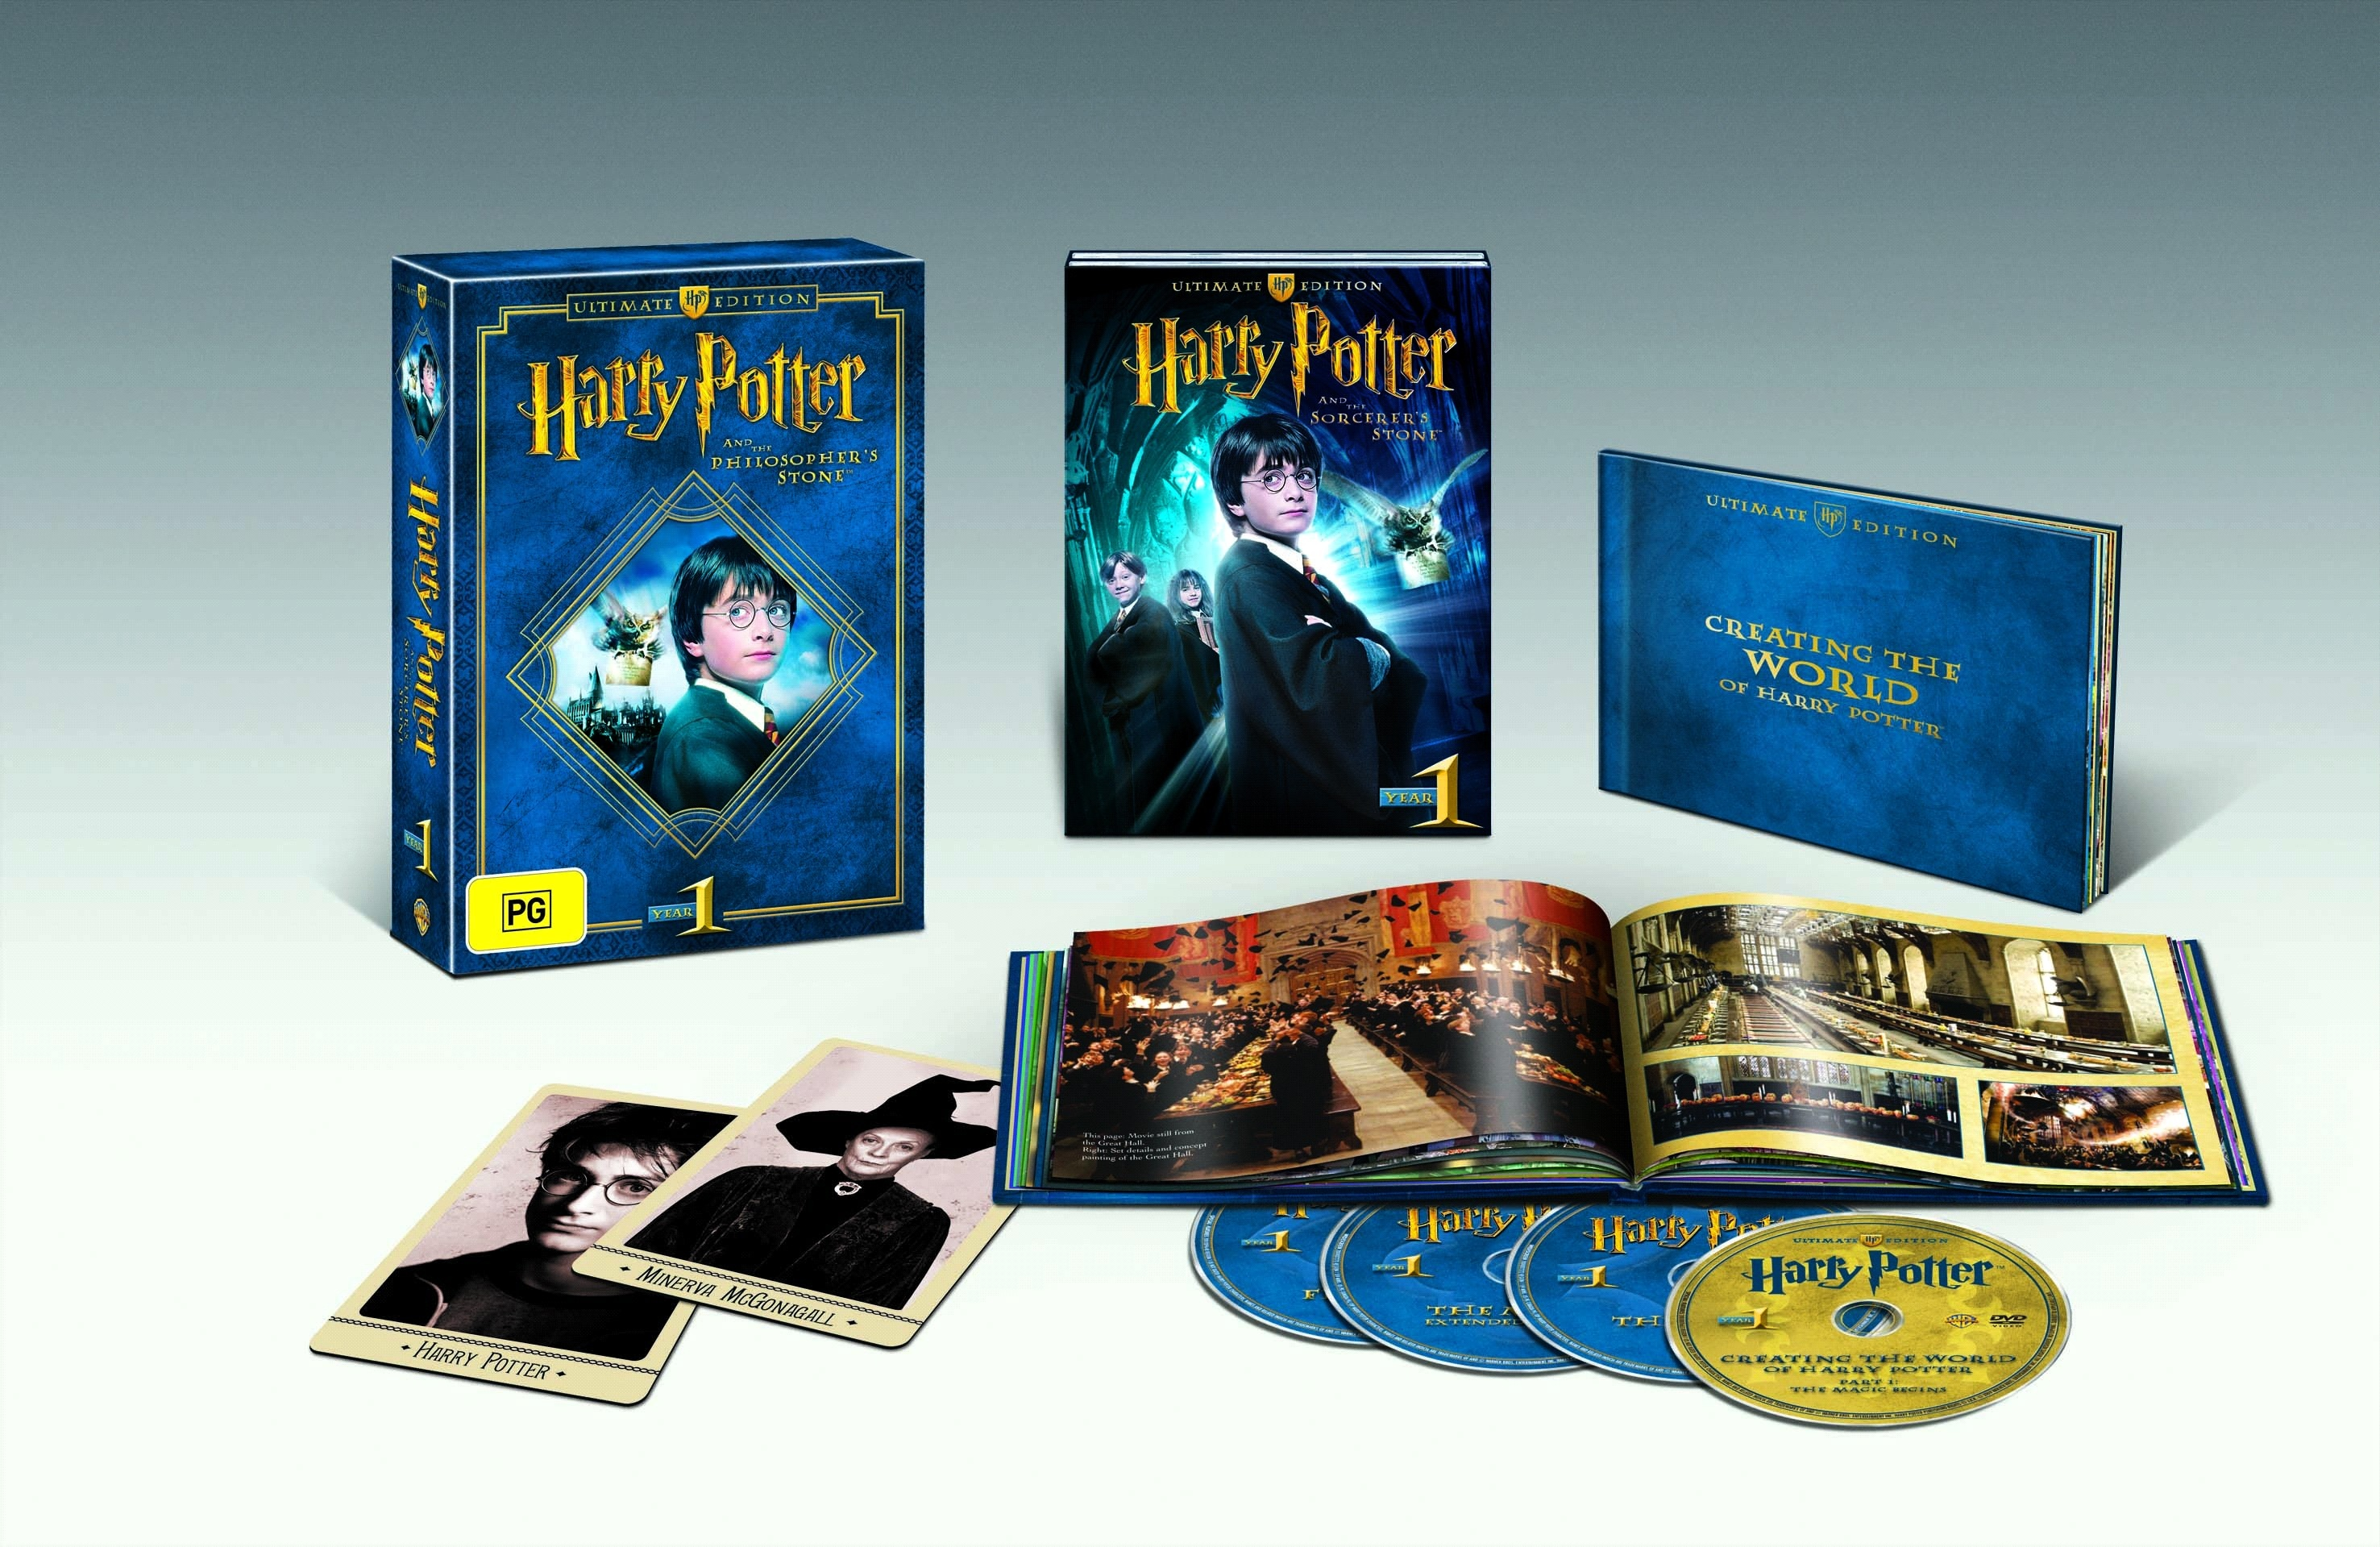 Harry Potter and the Philosopher's Stone (3 Disc Collector's Edition) by Emma Watson,Rupert Grint,Daniel Radcliffe,Maggie Smith,Chris Columbus, ISBN: 9325336110713